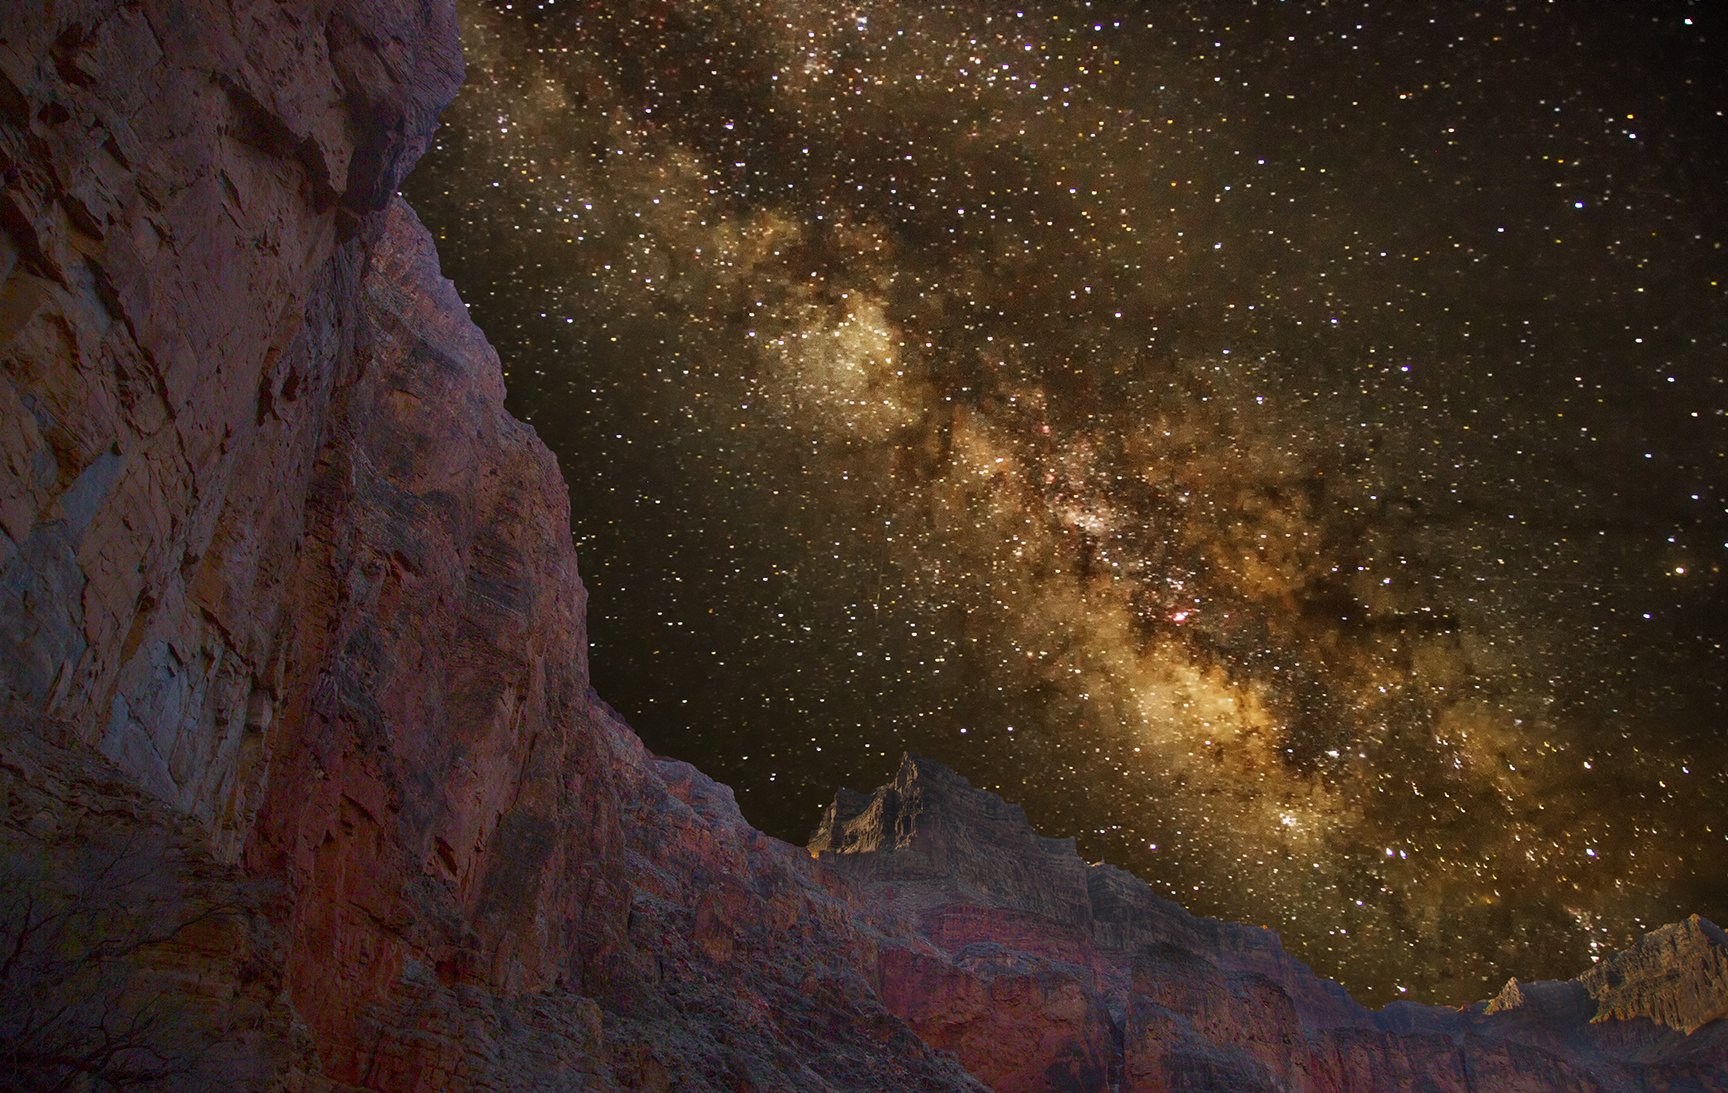 Mike Adler - Grand Canyon Milky Way